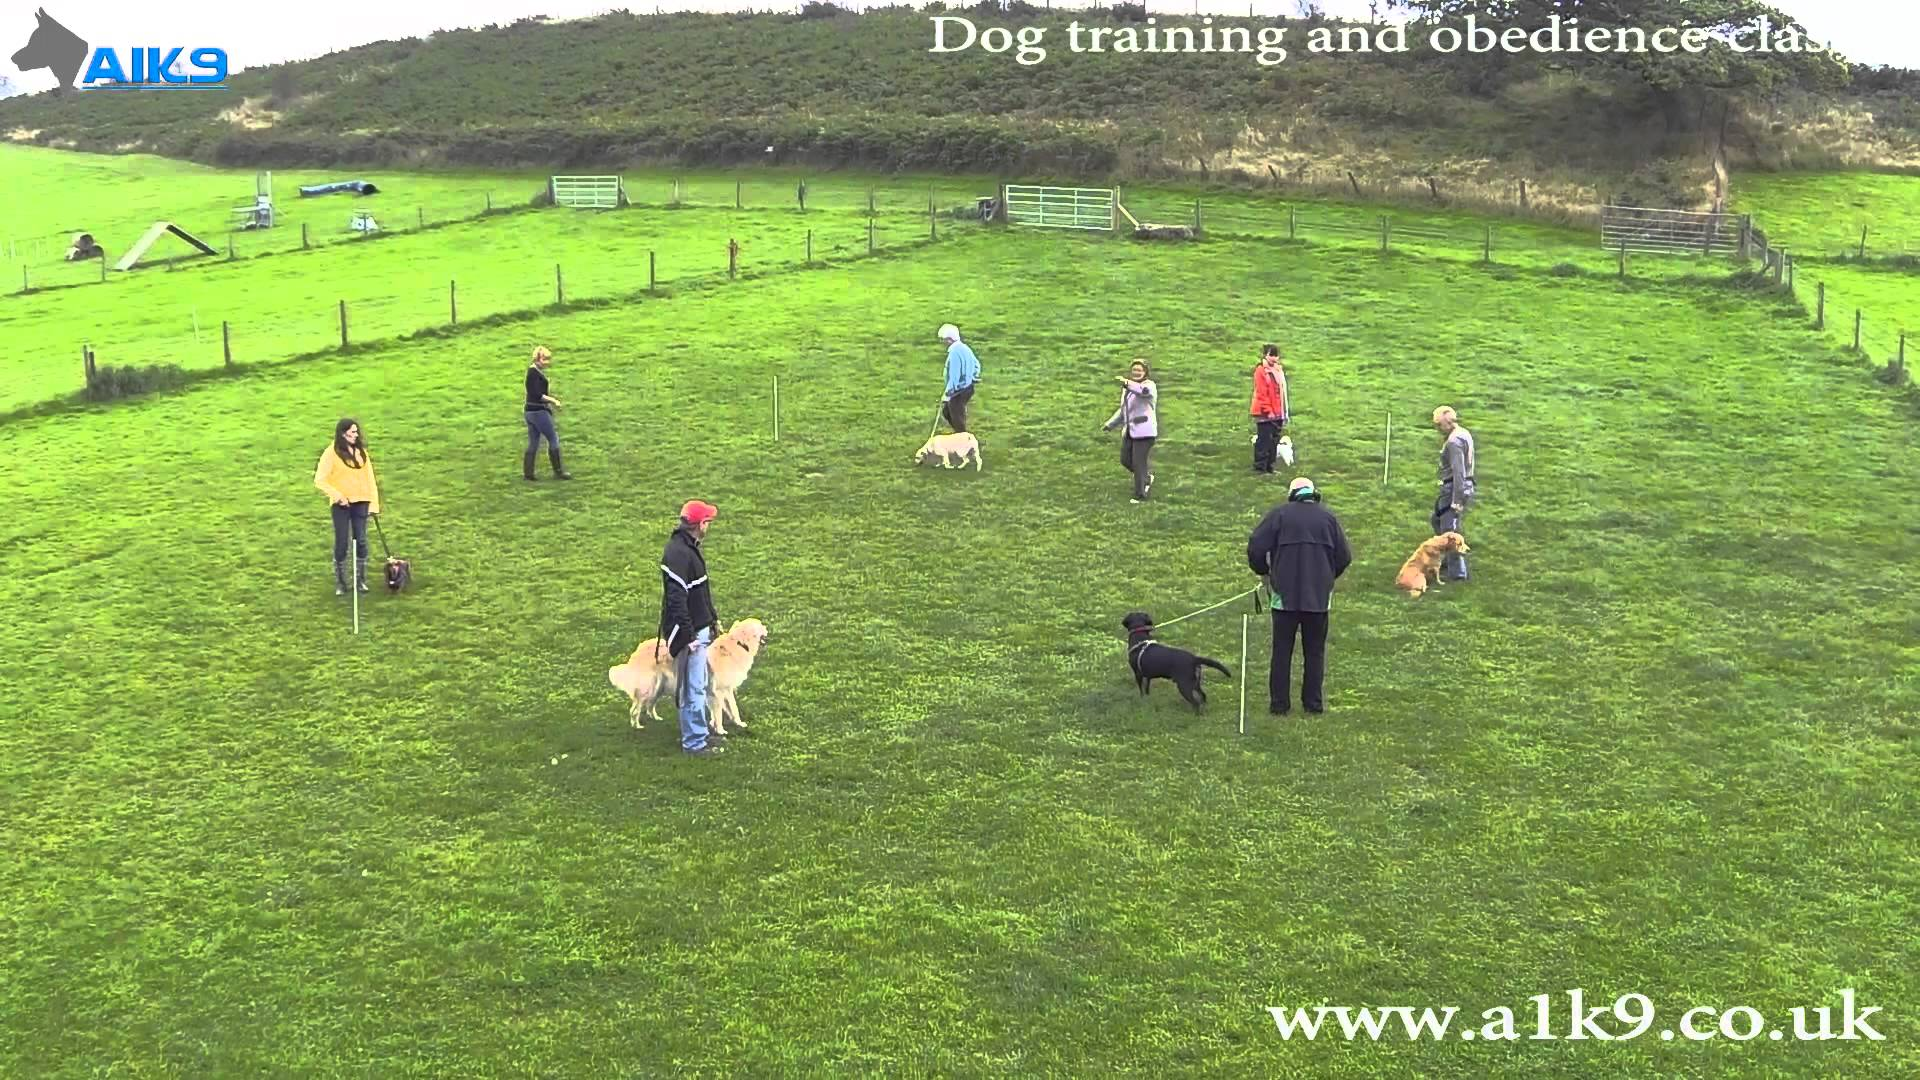 Group Dog Training Classes at A1K9 – The Professional Dog Trainers